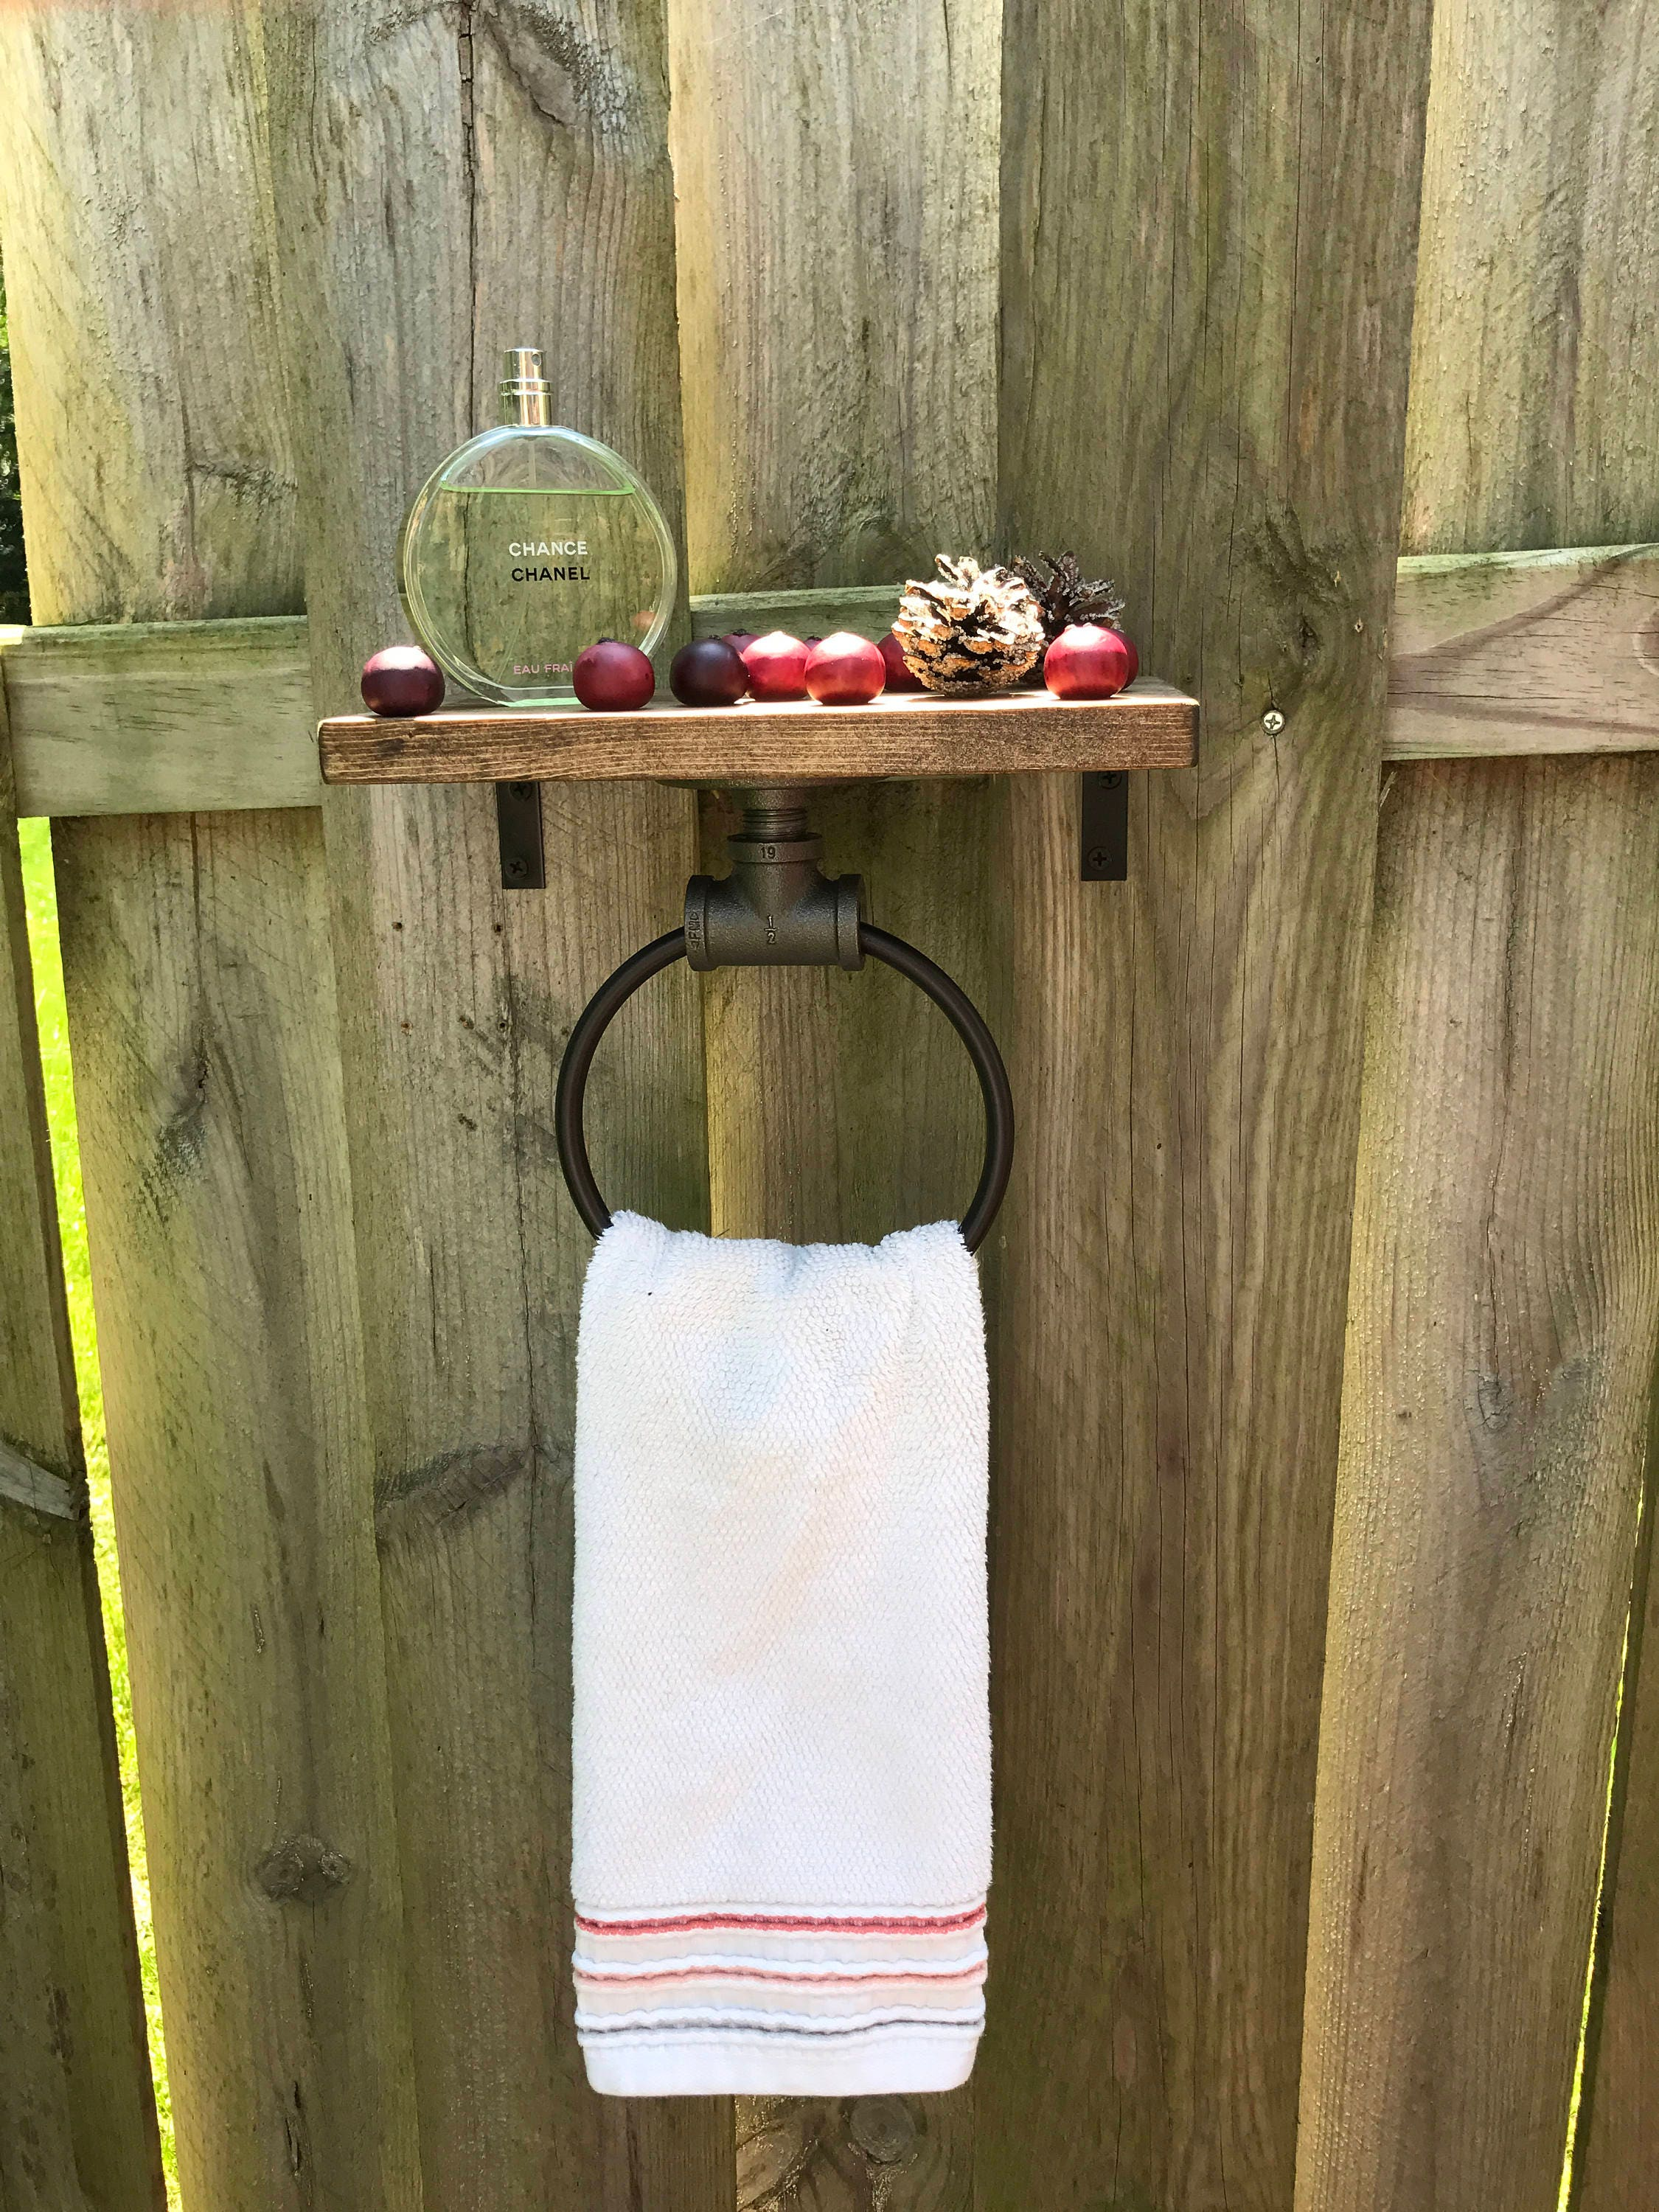 Farmhouse Hand Towel Holder Hand Towel Ring Shelf Bathroom Decor Organizer Wooden Rack